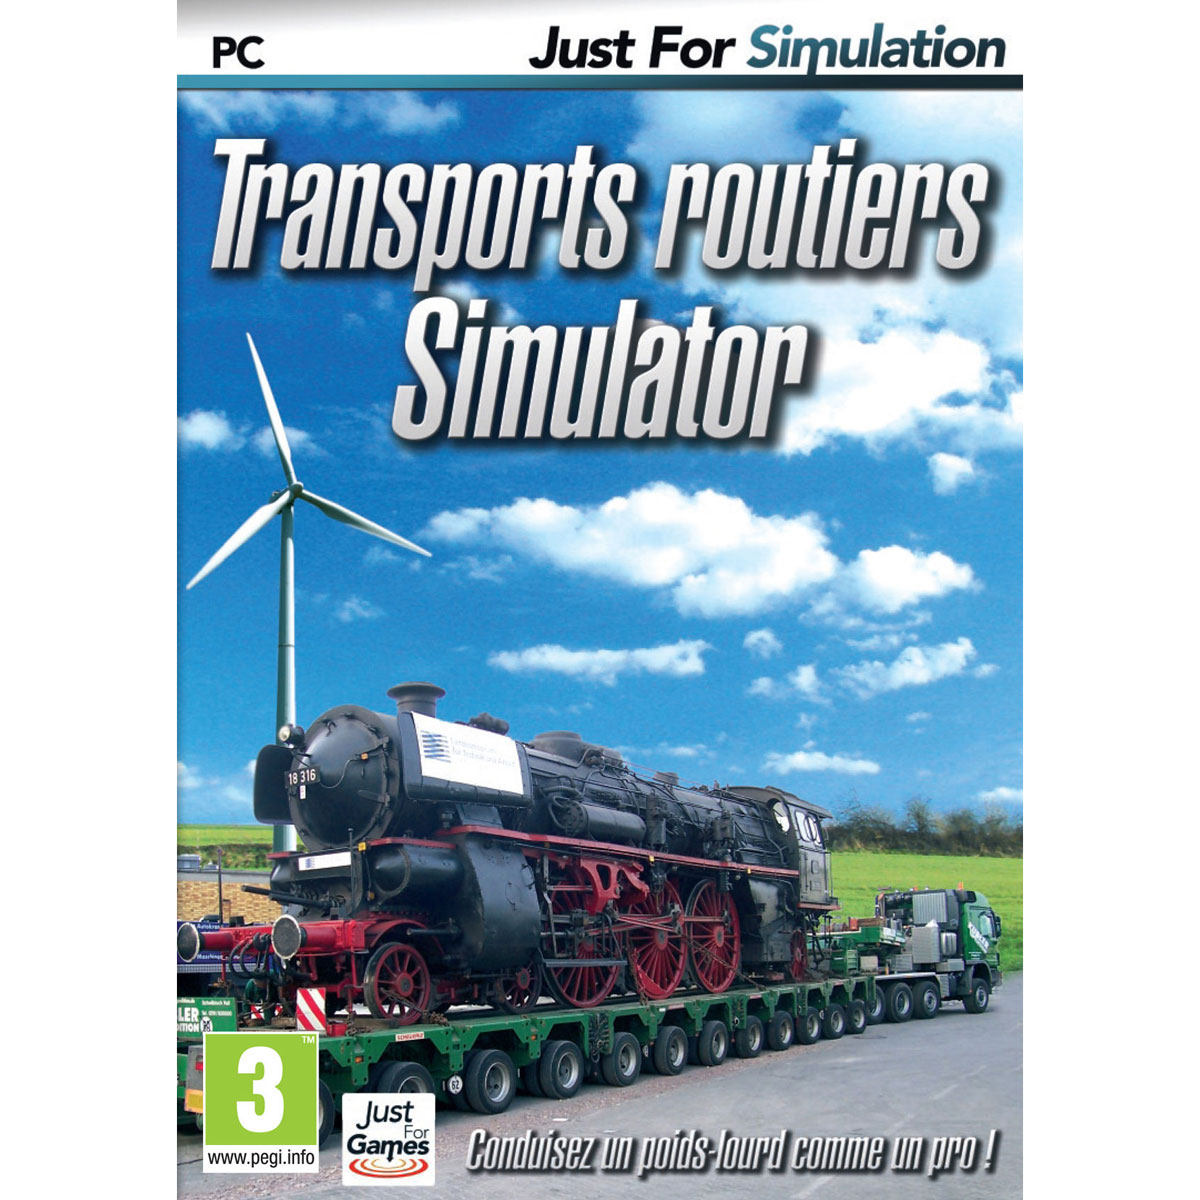 transport routiers simulator pc jeux pc just for games. Black Bedroom Furniture Sets. Home Design Ideas